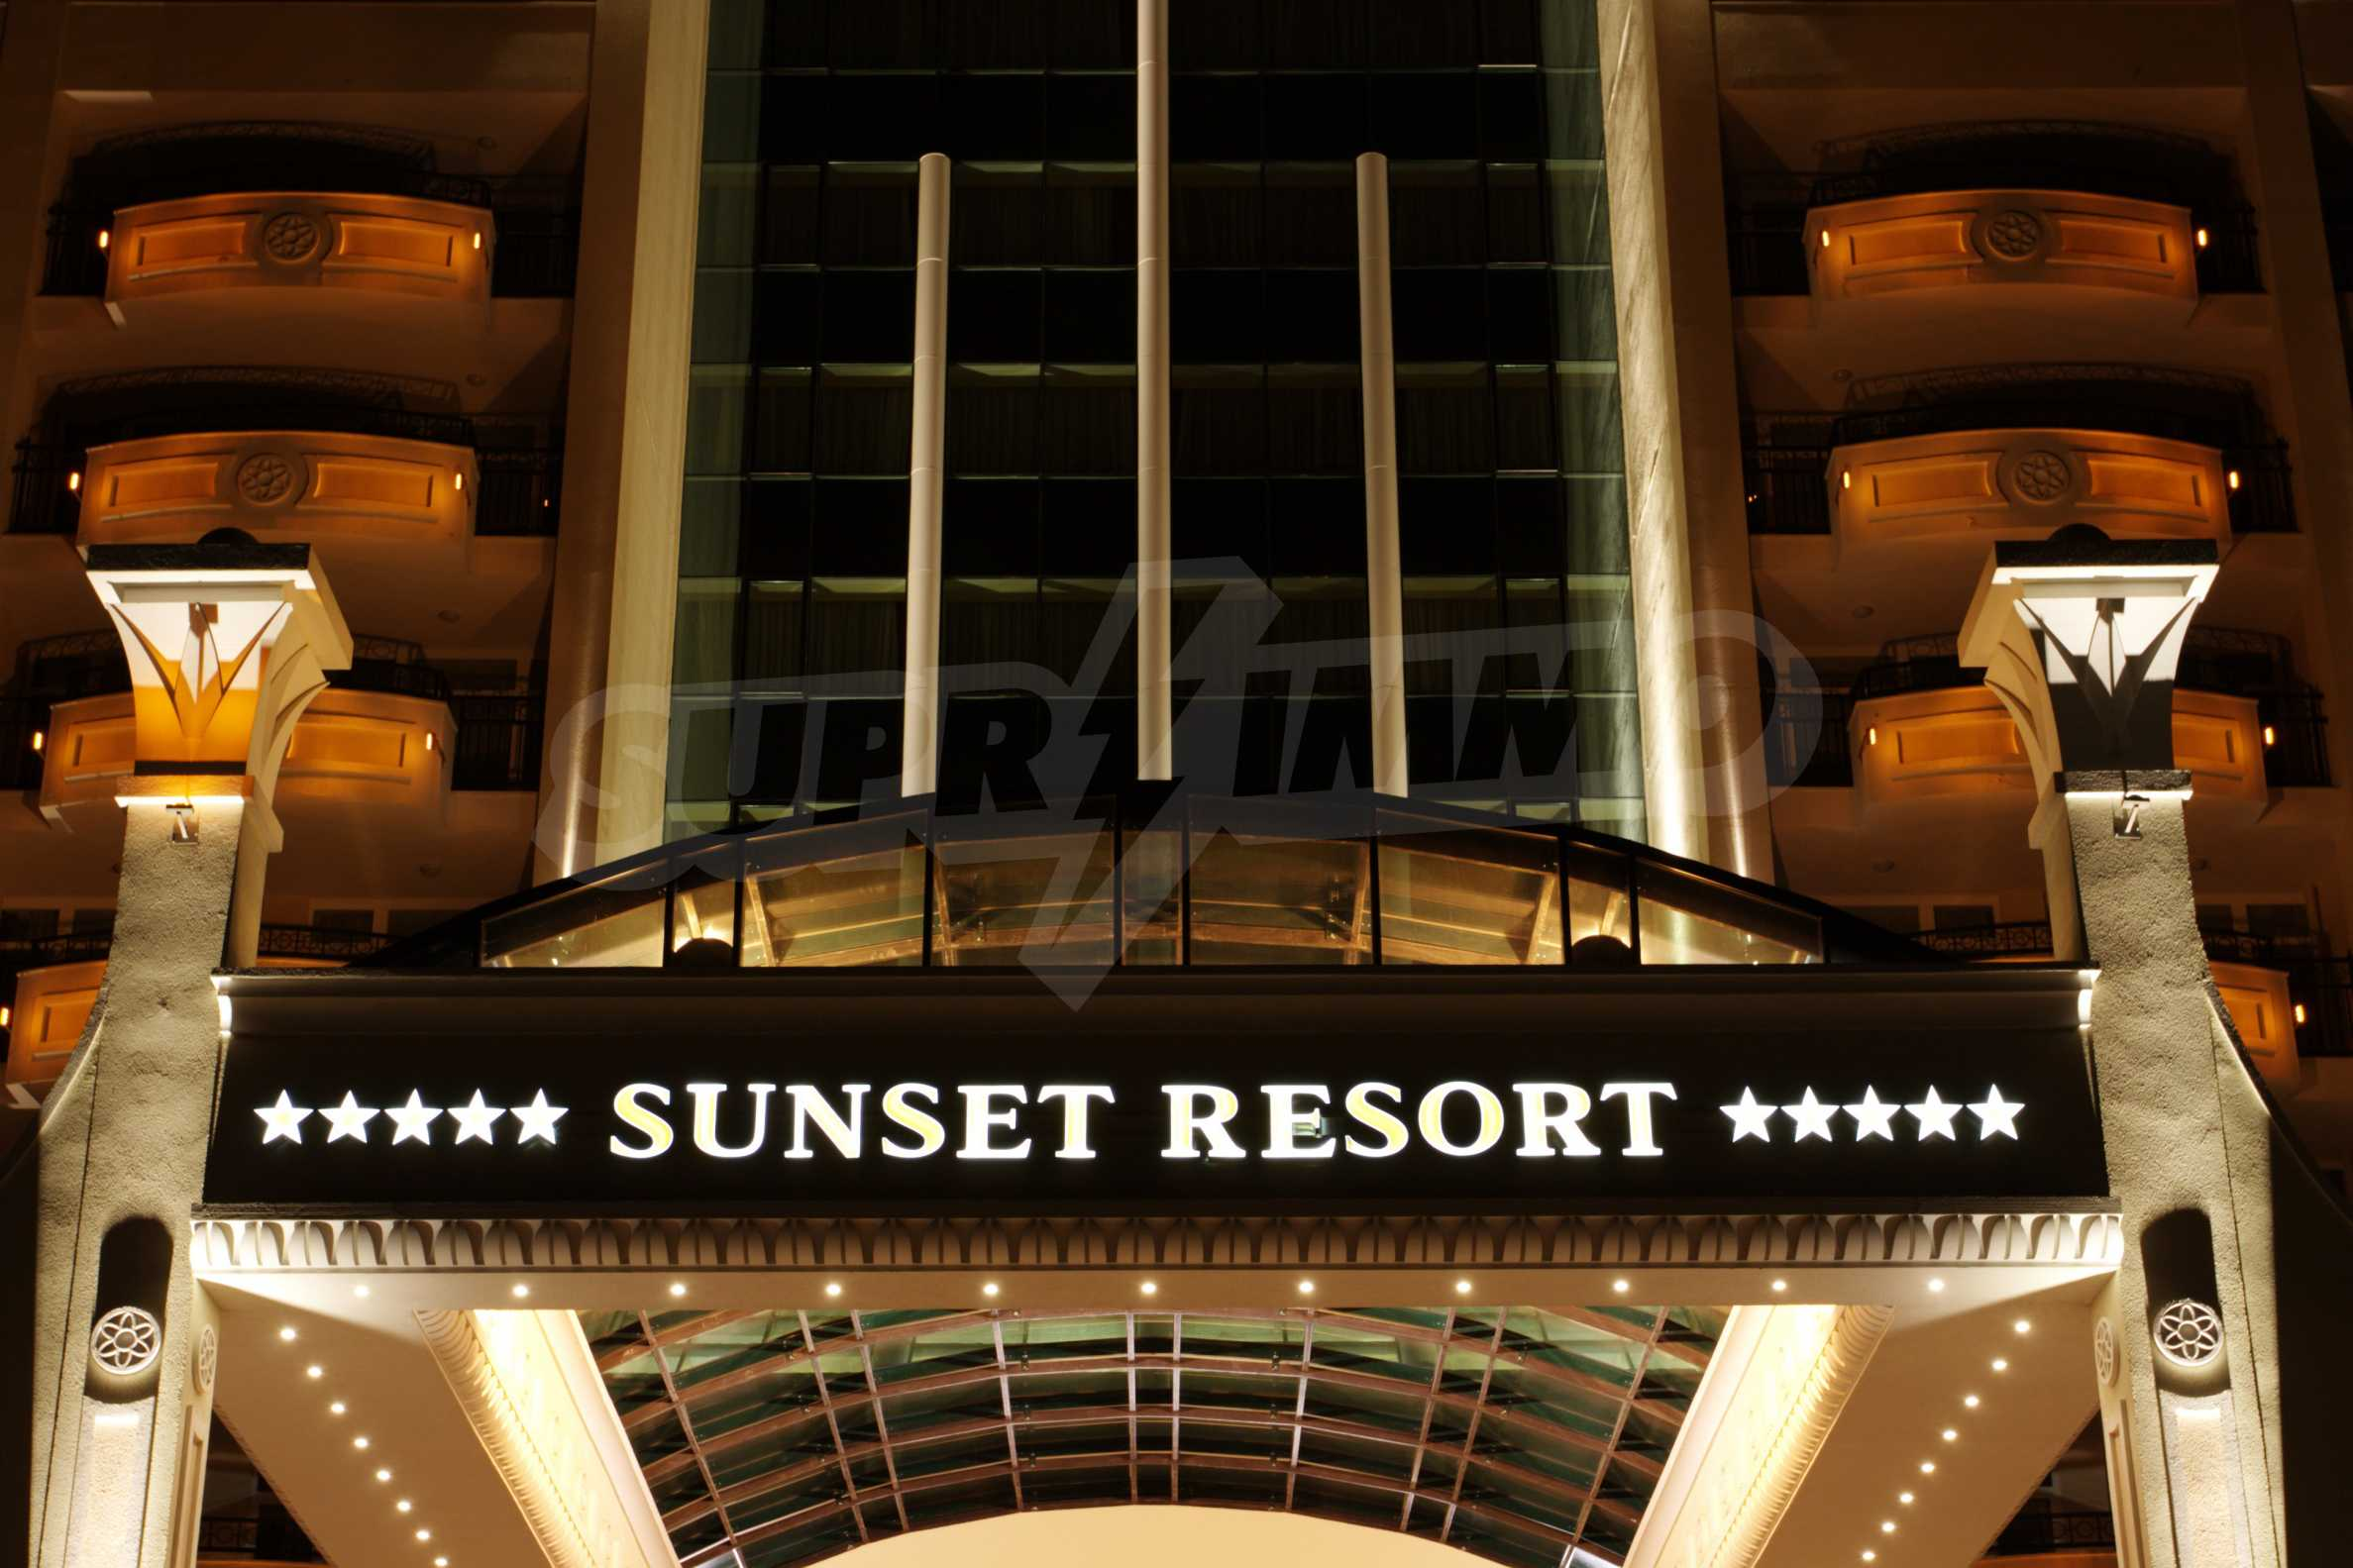 Sunset Resort 43